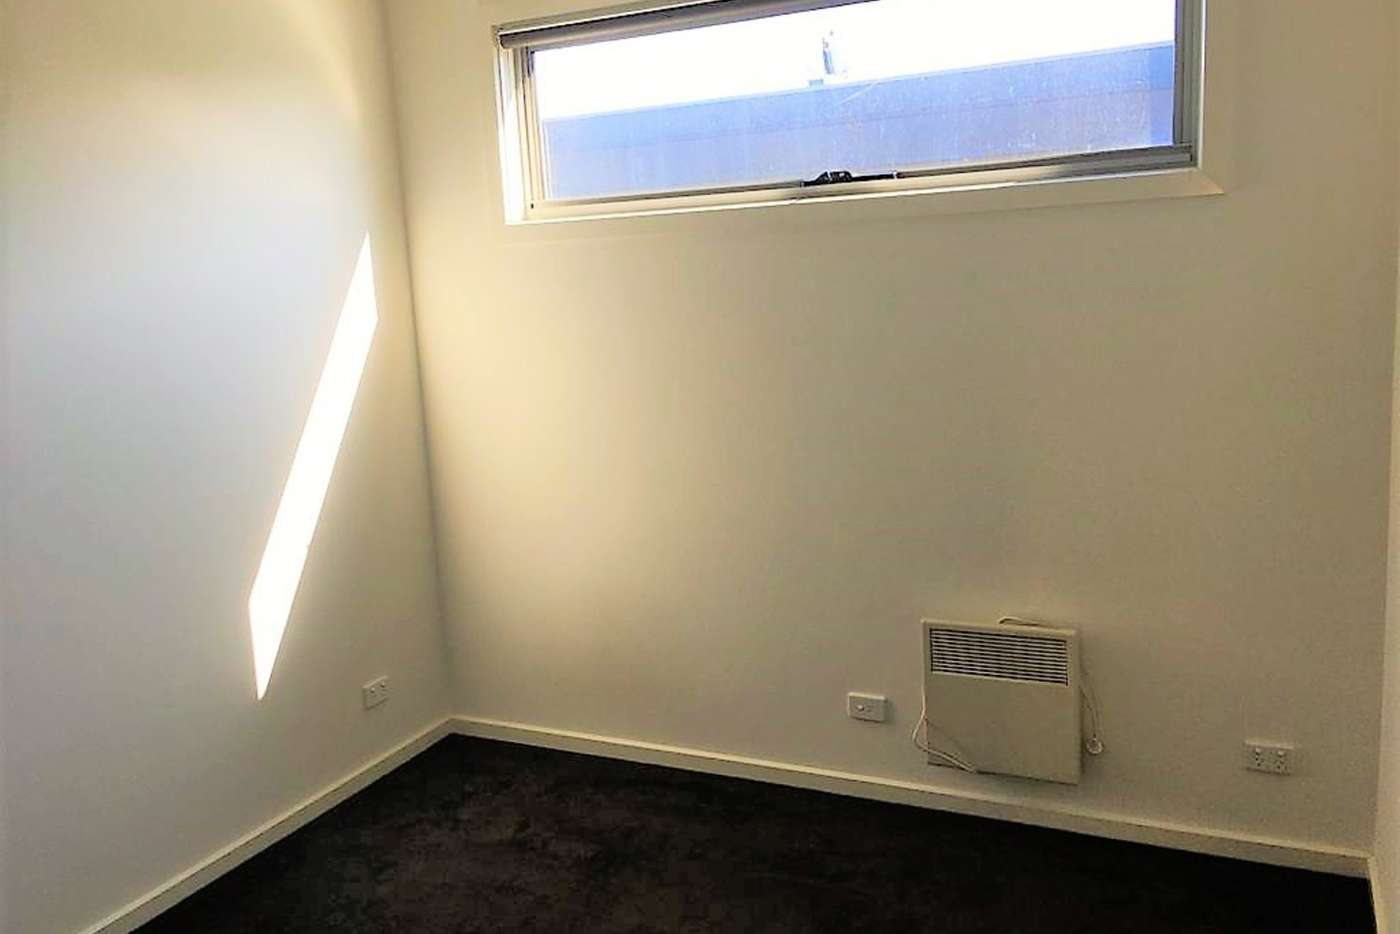 Seventh view of Homely townhouse listing, 3/1 Gladstone Parade, Glenroy VIC 3046